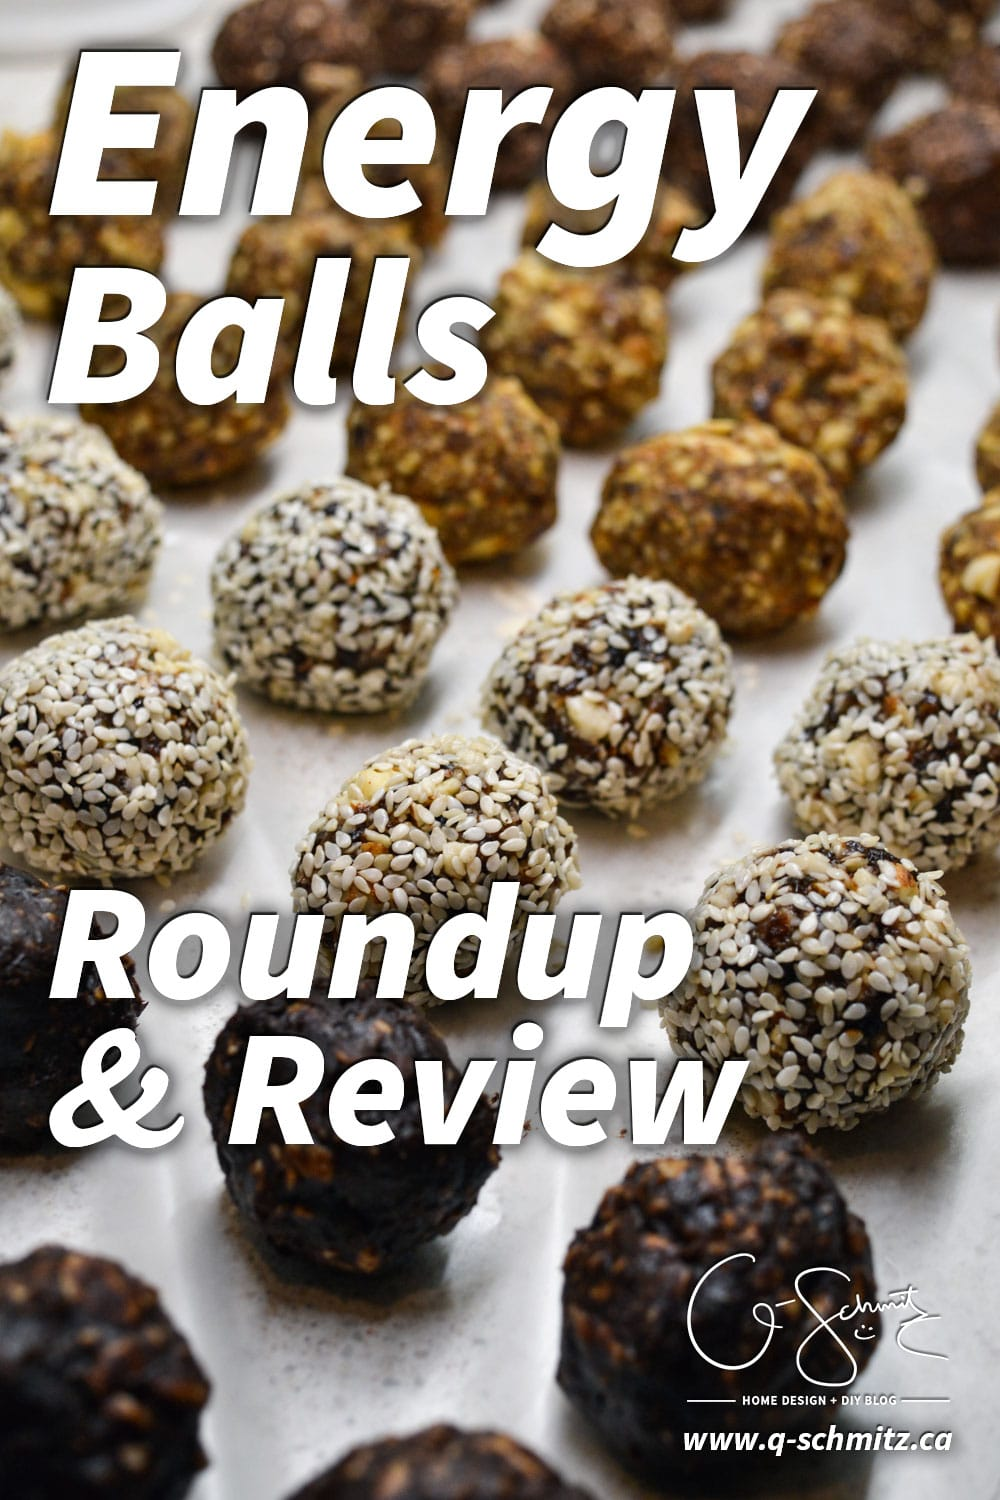 Have you ever made any energy balls or bites? (They're a great, healthy way to satisfy a snack craving in between meals!). Here's my roundup and review of some popular online energy ball recipes, all tried and tested by yours truly!